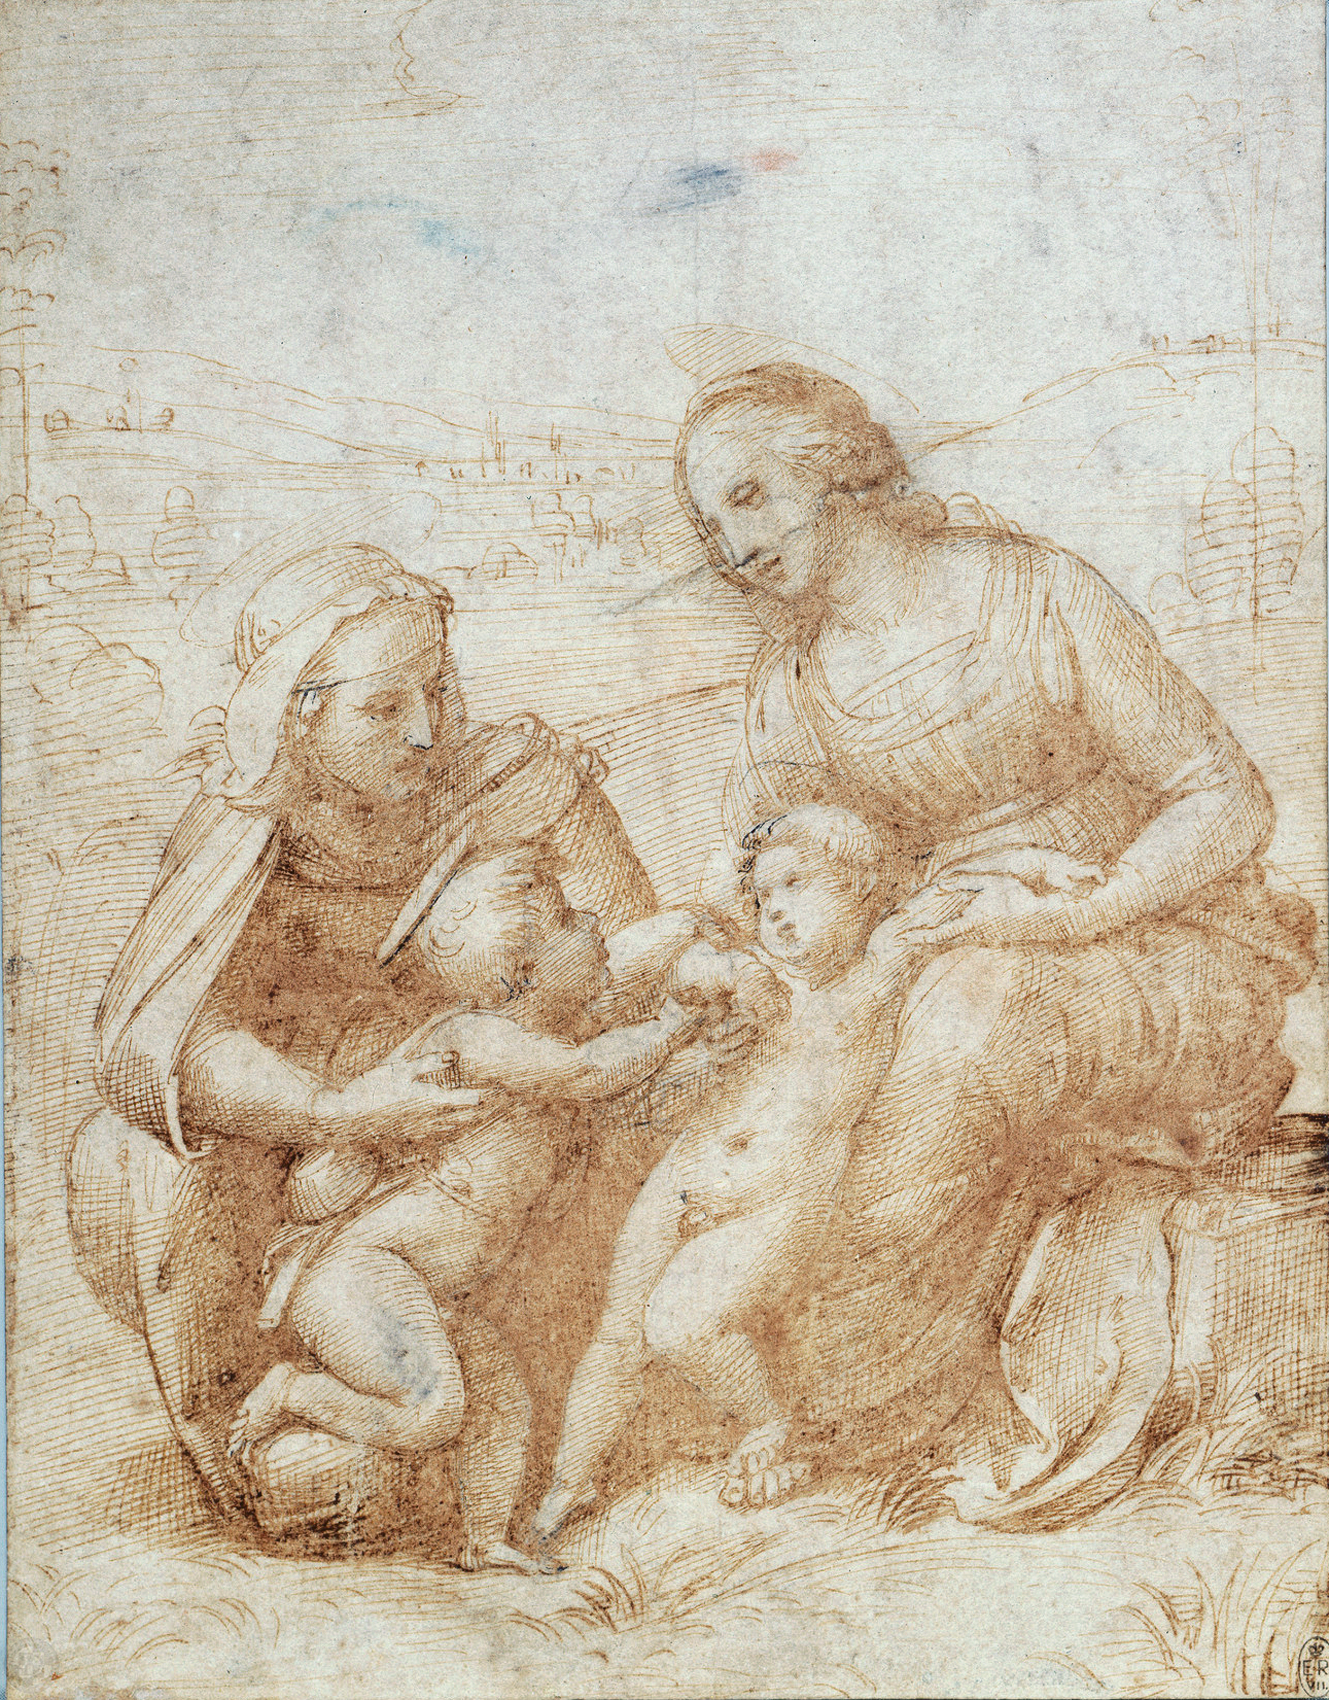 """The Virgin and Child with St Elizabeth and the Infant St John  c.1506 23.4 x 18.0 cm    """" Description:   A drawing showing the seated Virgin on the right, with the Christ Child, leaning against her; on the left is St Elizabeth with the Infant St. John the Baptist, who clutches the right arm of Christ. The scene is set in landscape.  This drawing dates from the time Raphael spent in Florence between 1504 and 1508, when he made a number of paintings of the Virgin and Child. Although this drawing has been connected to a surviving painting, the Canigiani Holy Family (now in Munich), it differs significantly from the finished work and may have been made with another project in mind."""""""